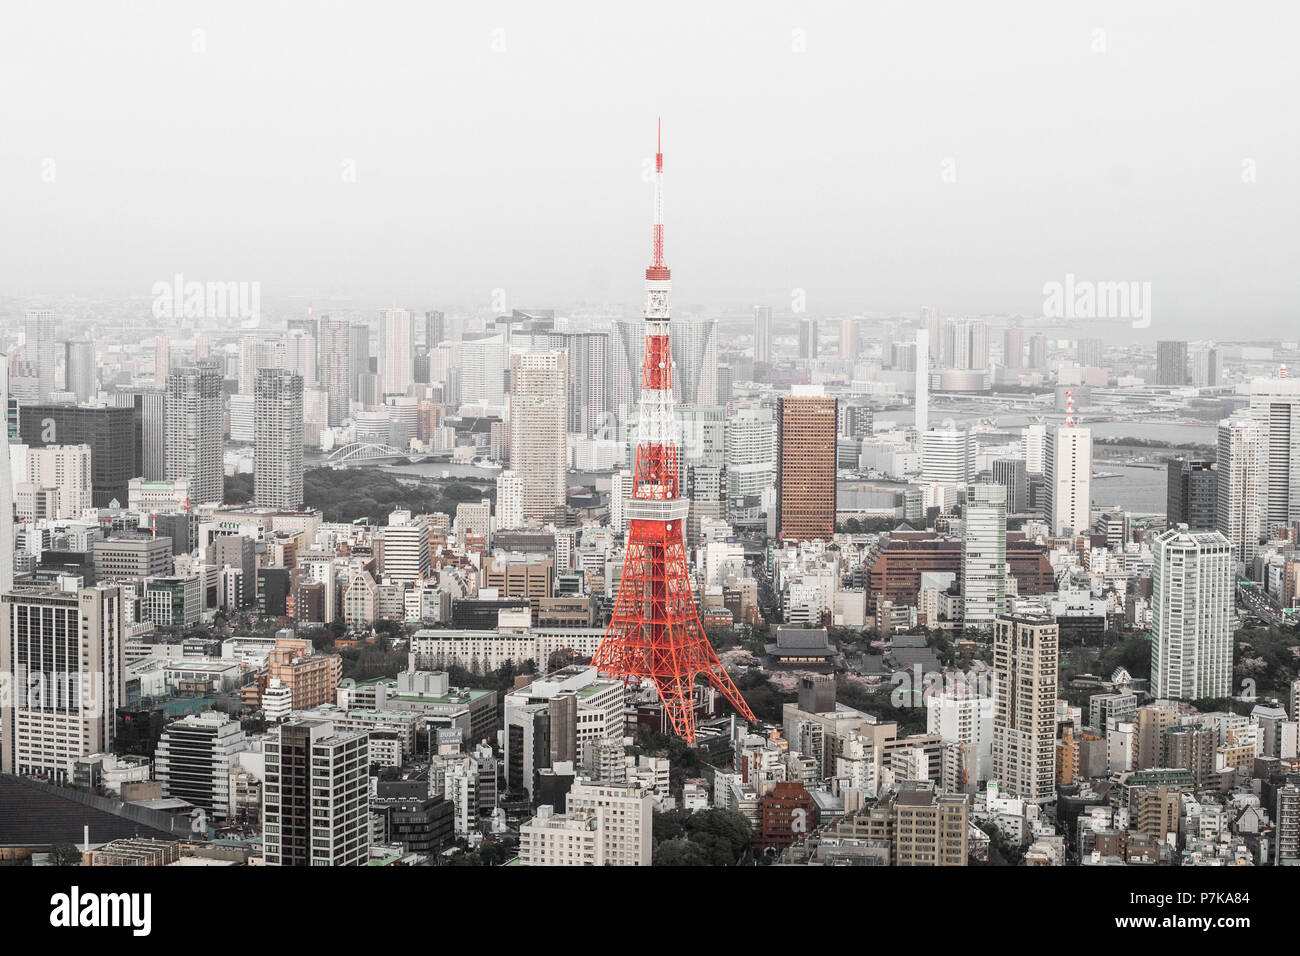 The Tokyo Tower by day - Stock Image